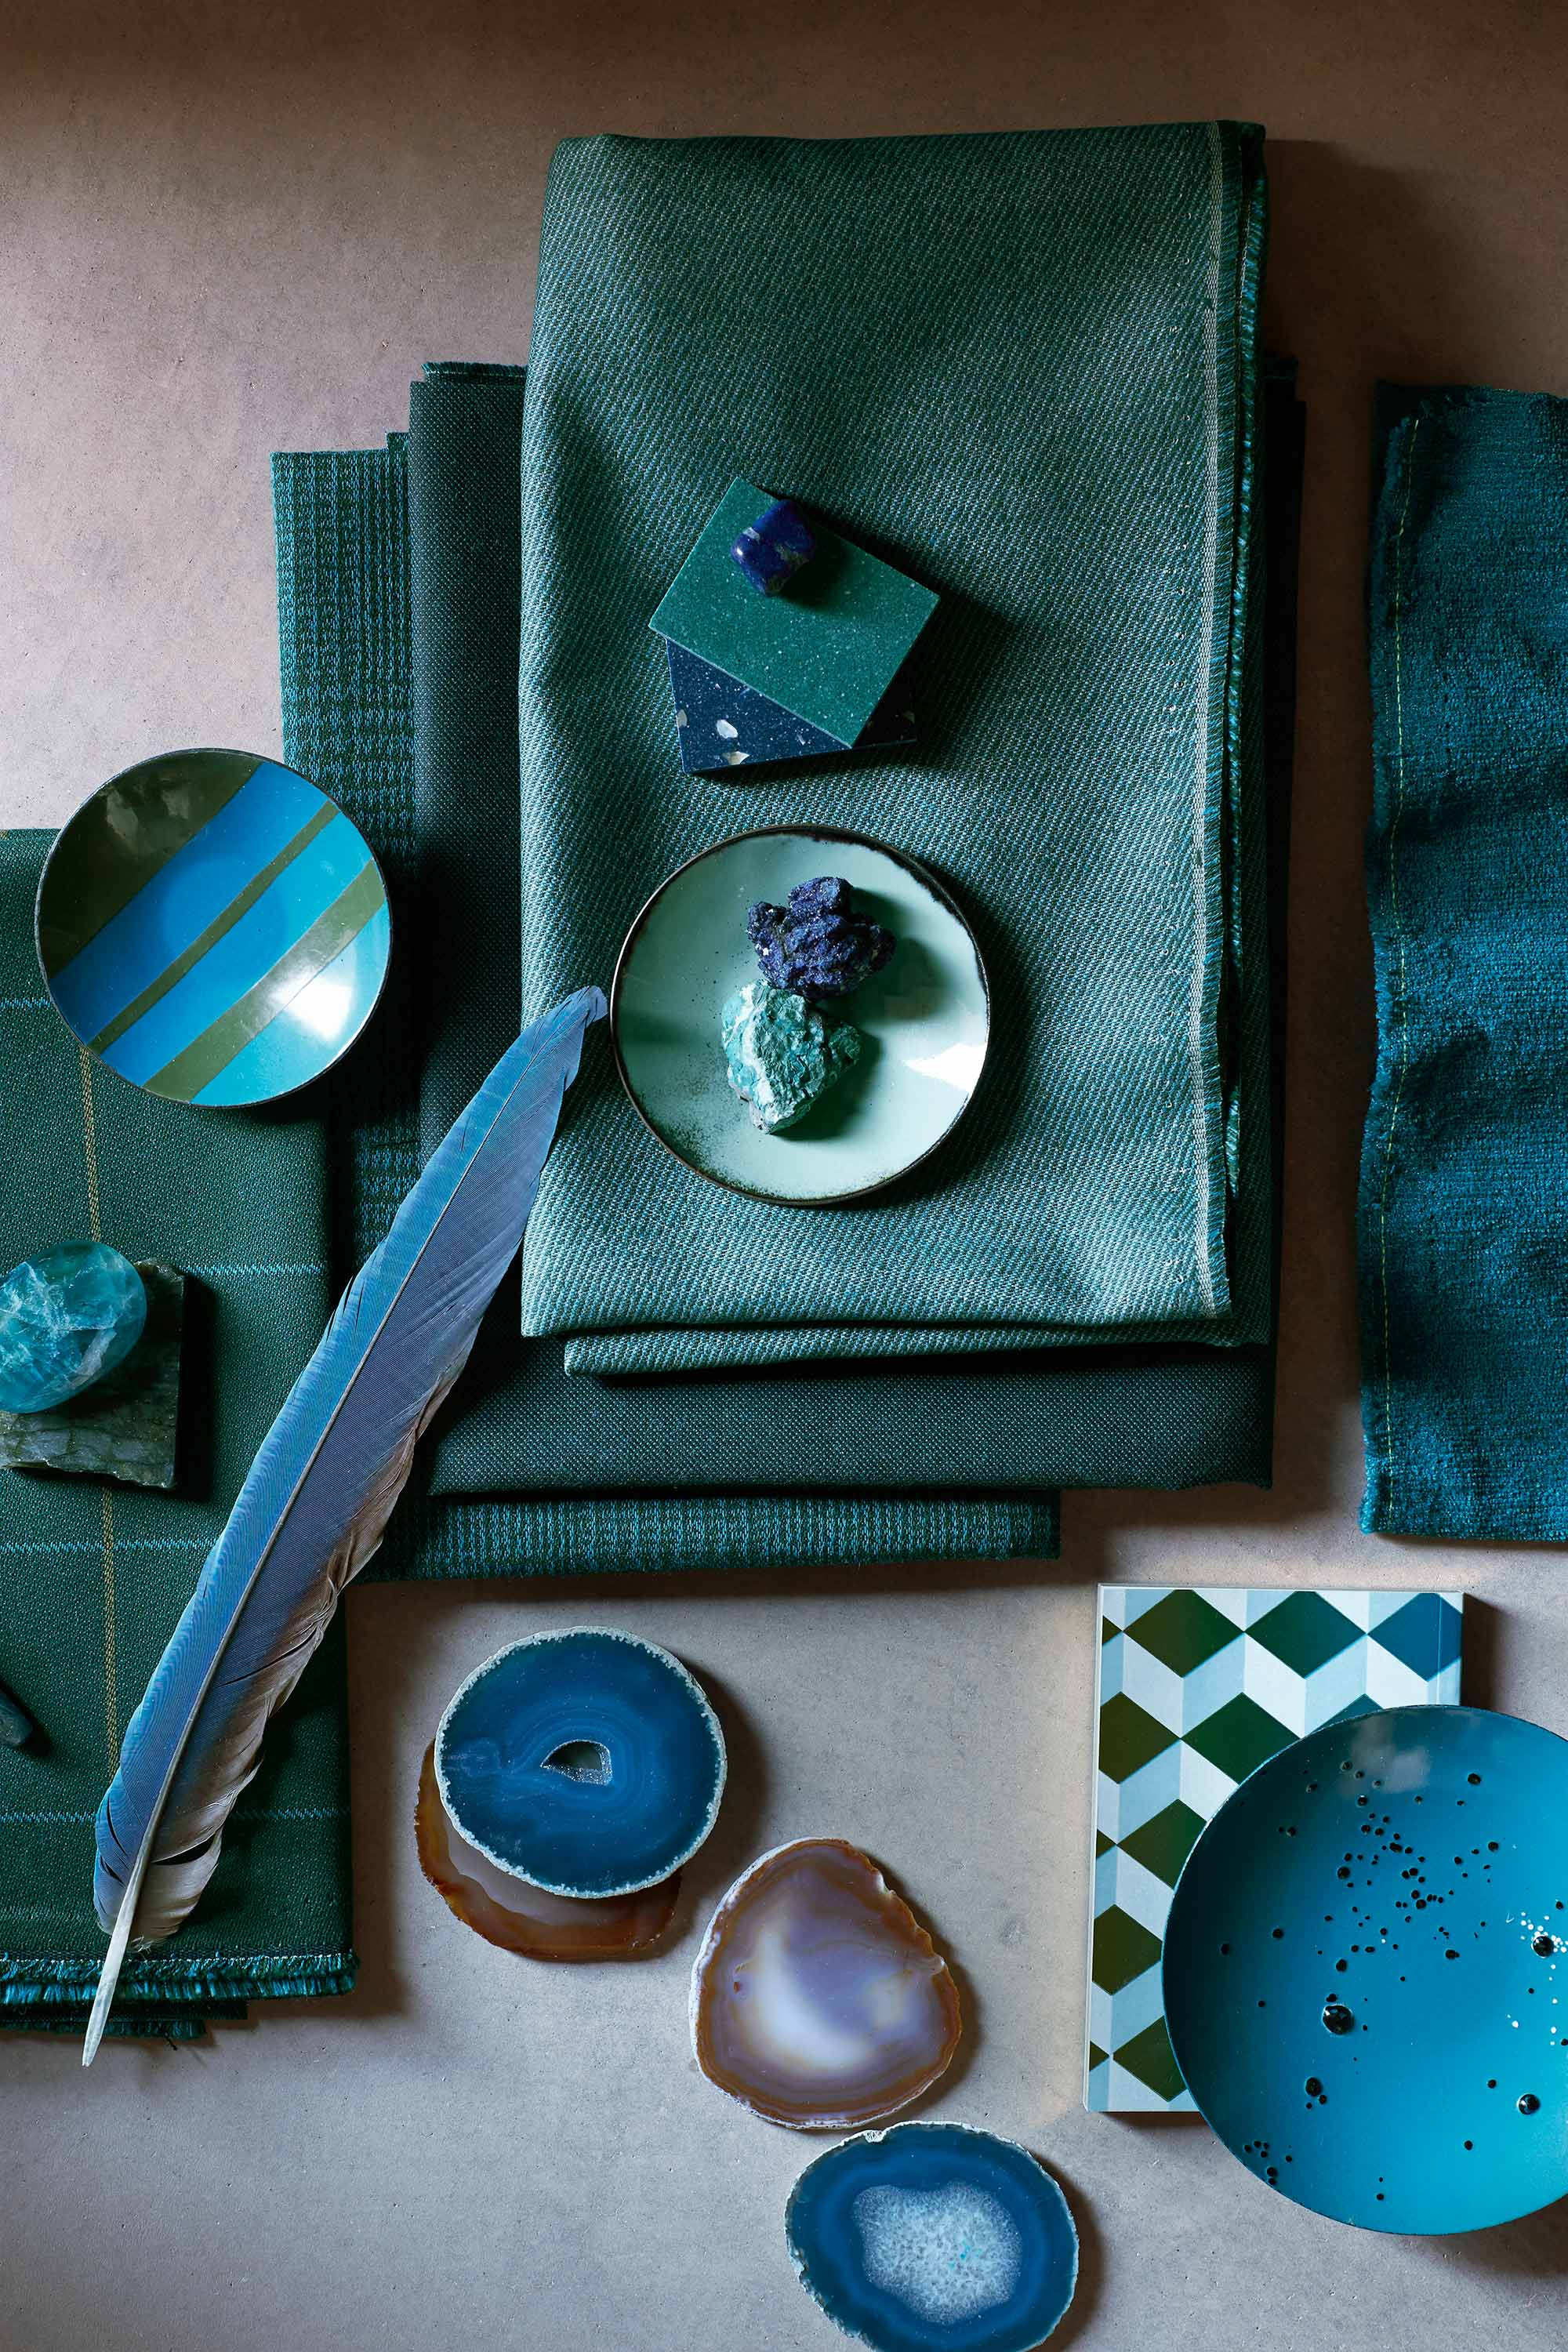 Teal Sunbrella upholstery fabrics folded with accessories